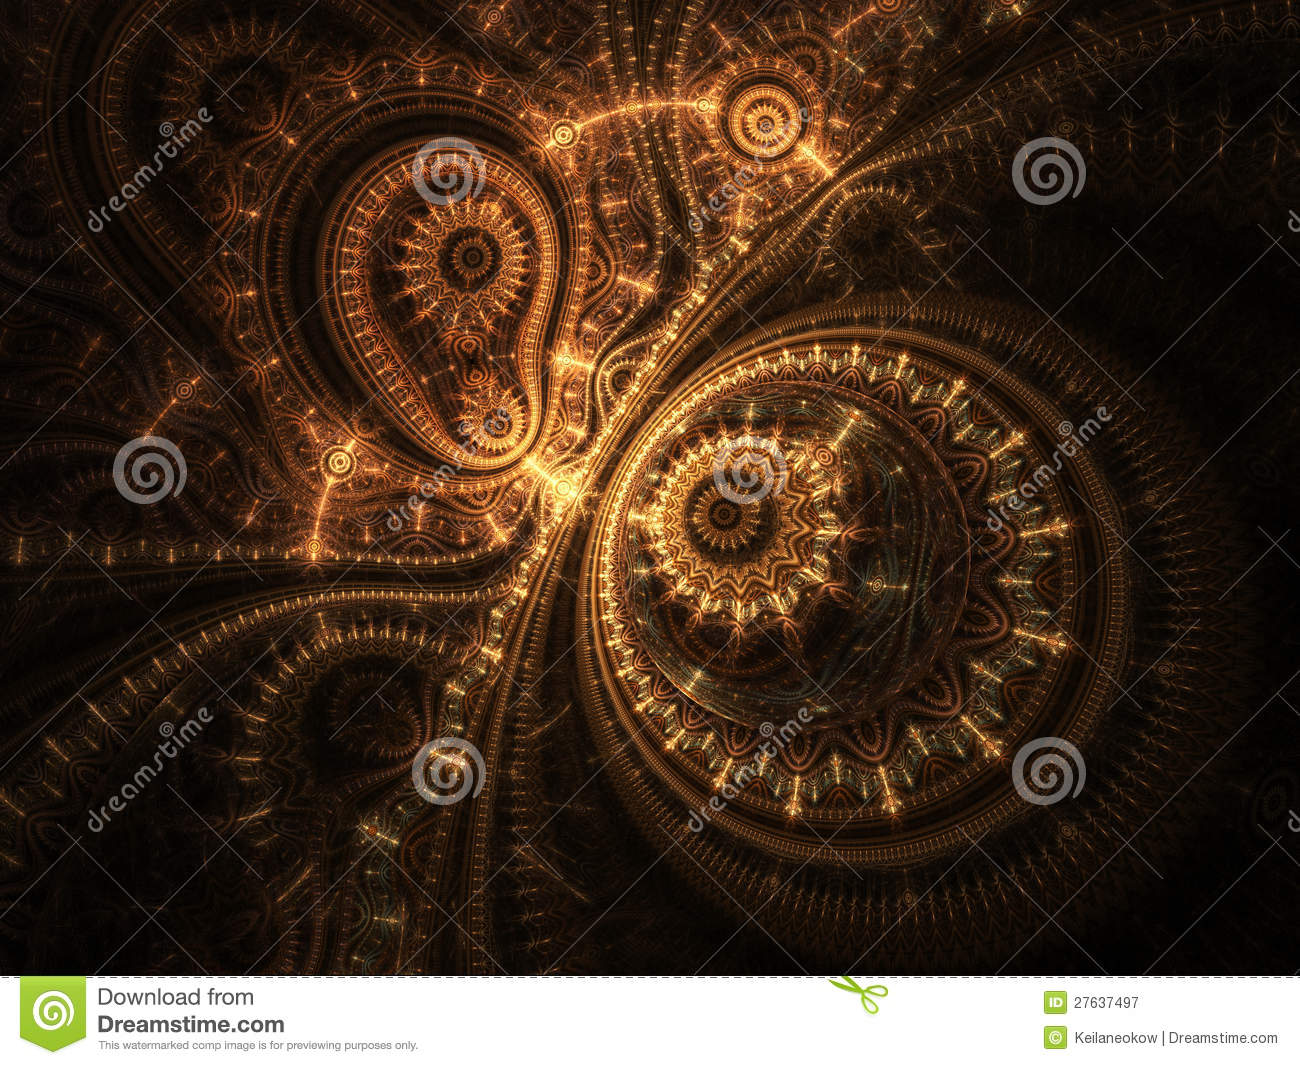 3d Digital Clock Wallpaper Abstract Design Of Steampunk Watch Royalty Free Stock